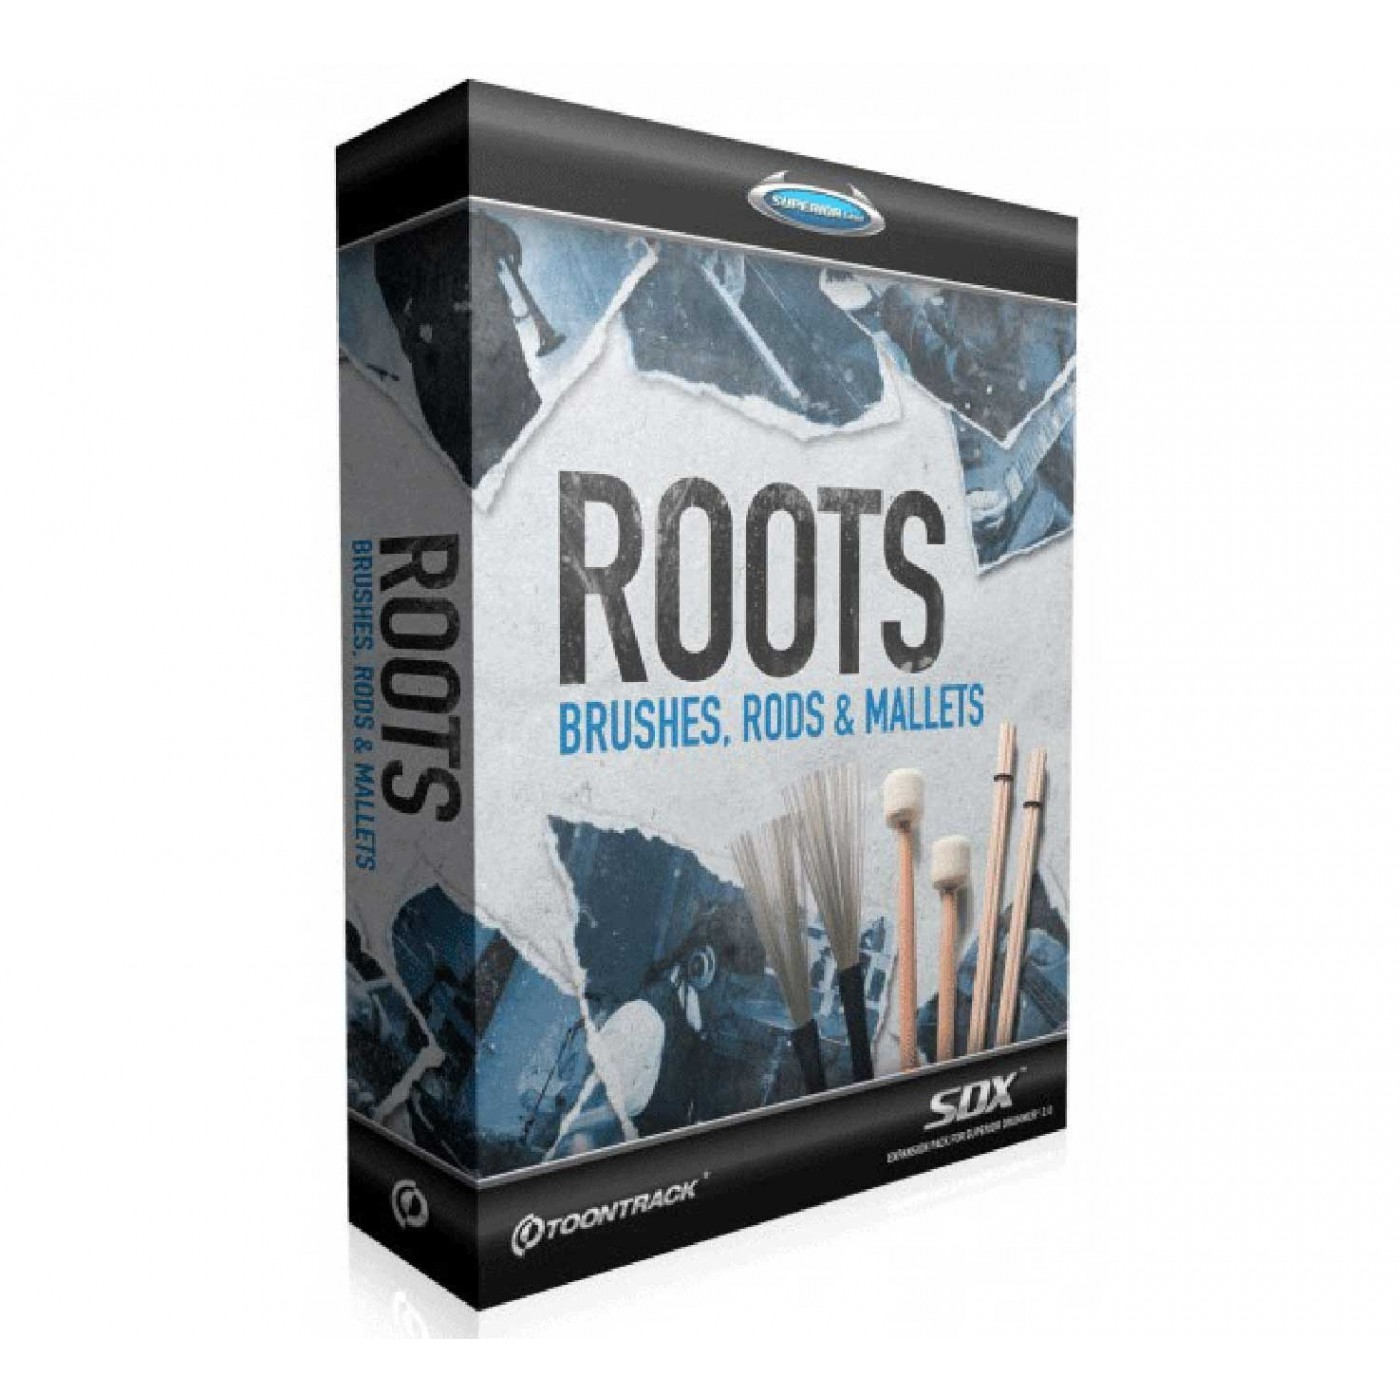 Toontrack SDX Roots Brushes, Rods & Mallets